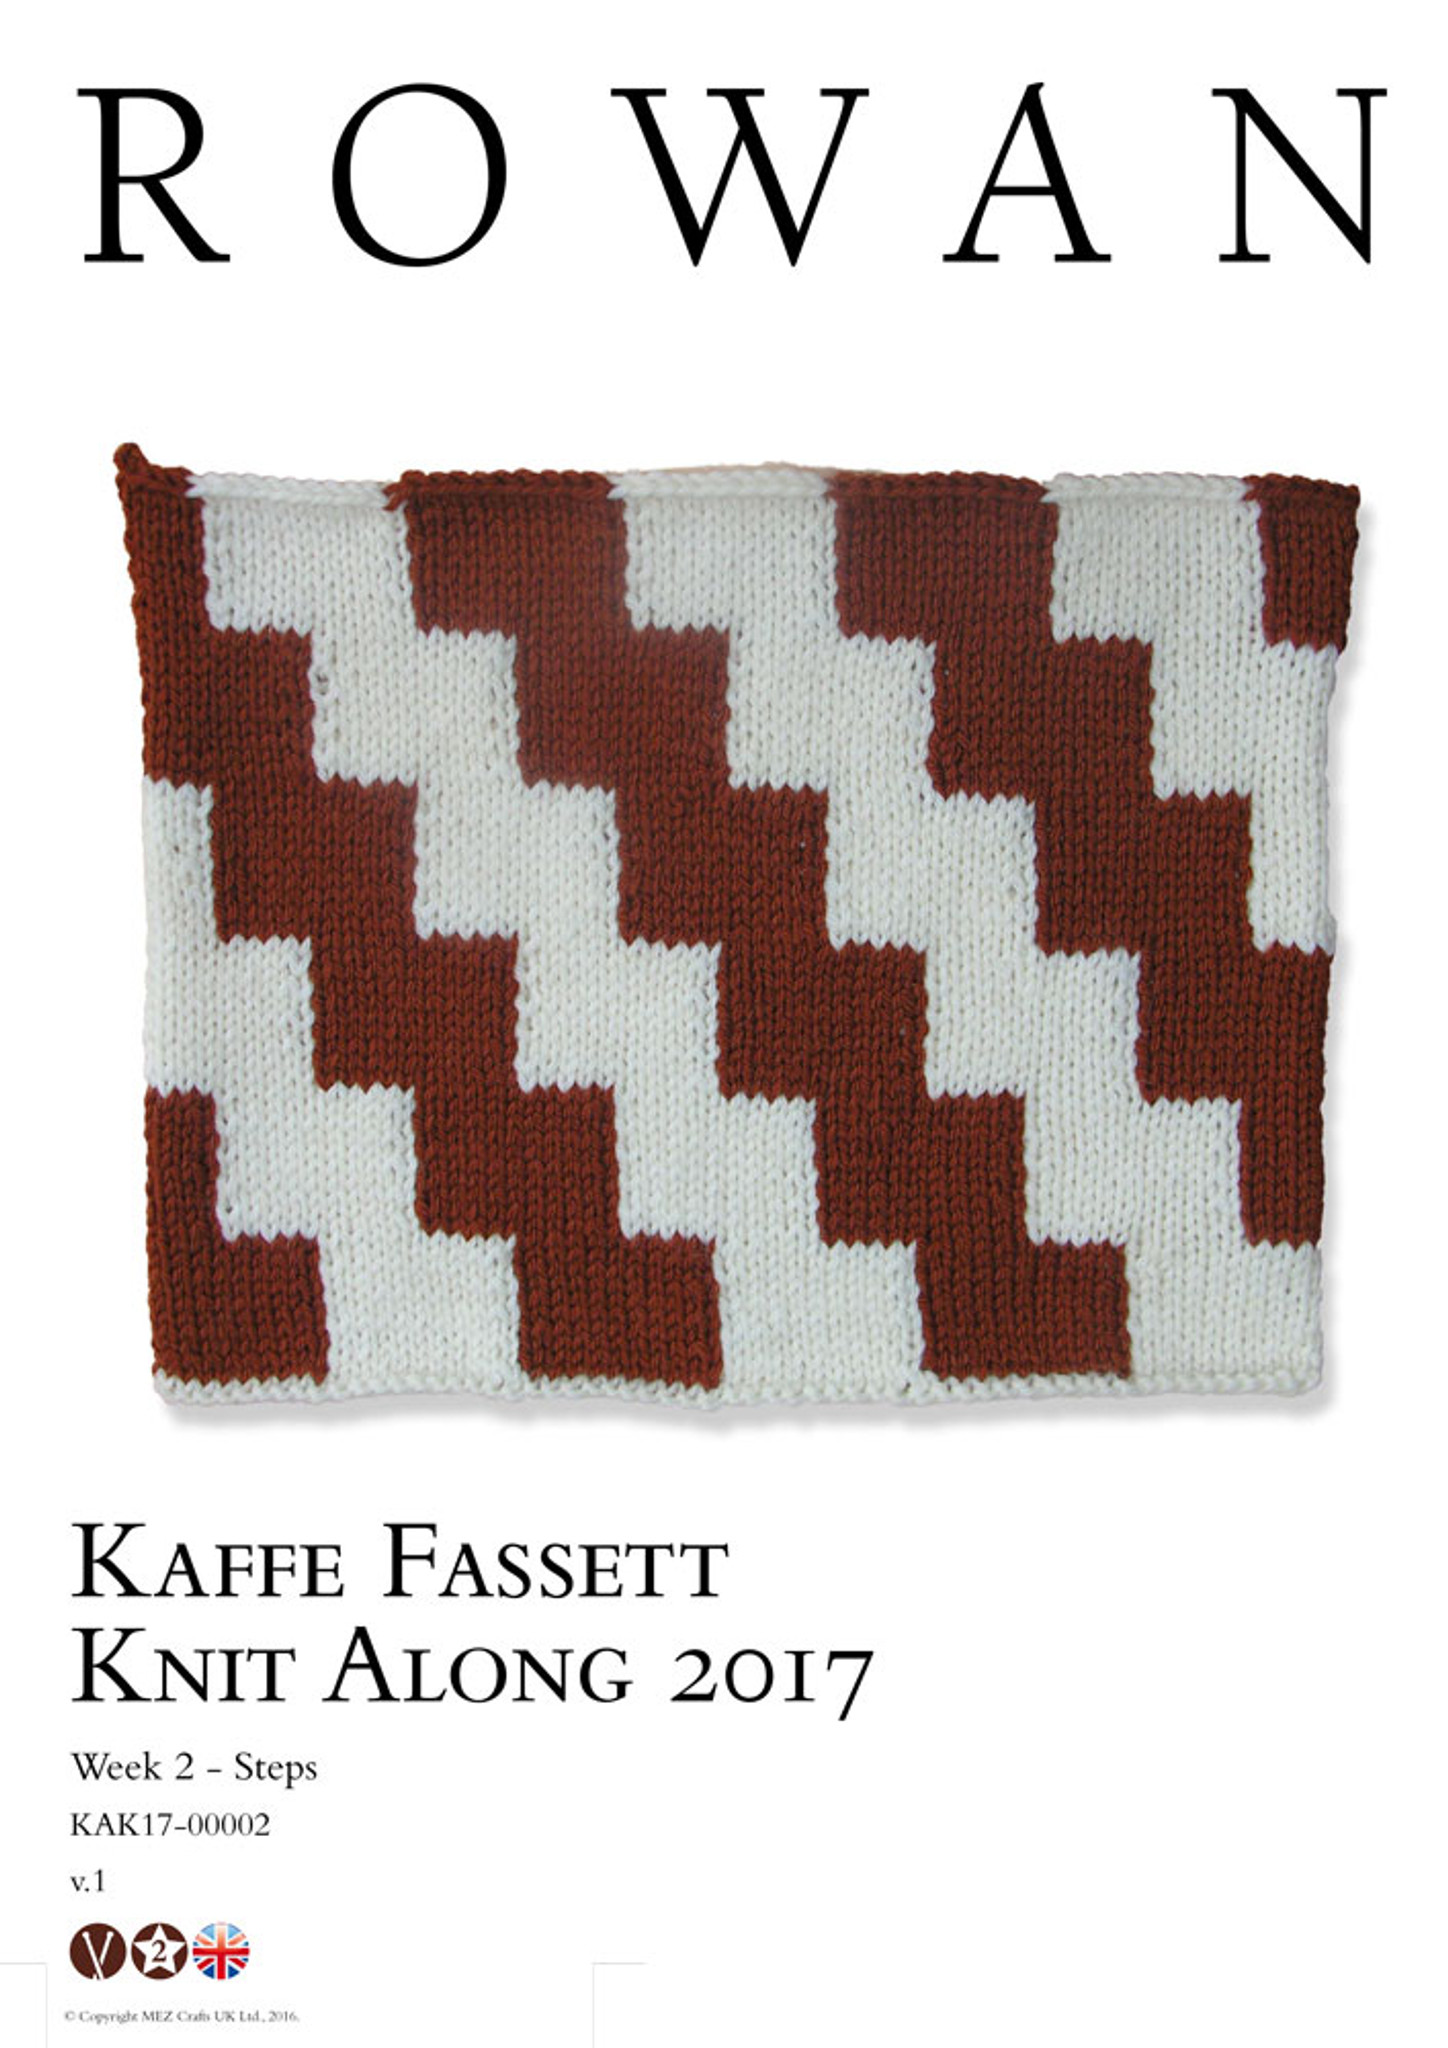 Kaffe Fassett Knit Along - week 2 - Ascending Squares